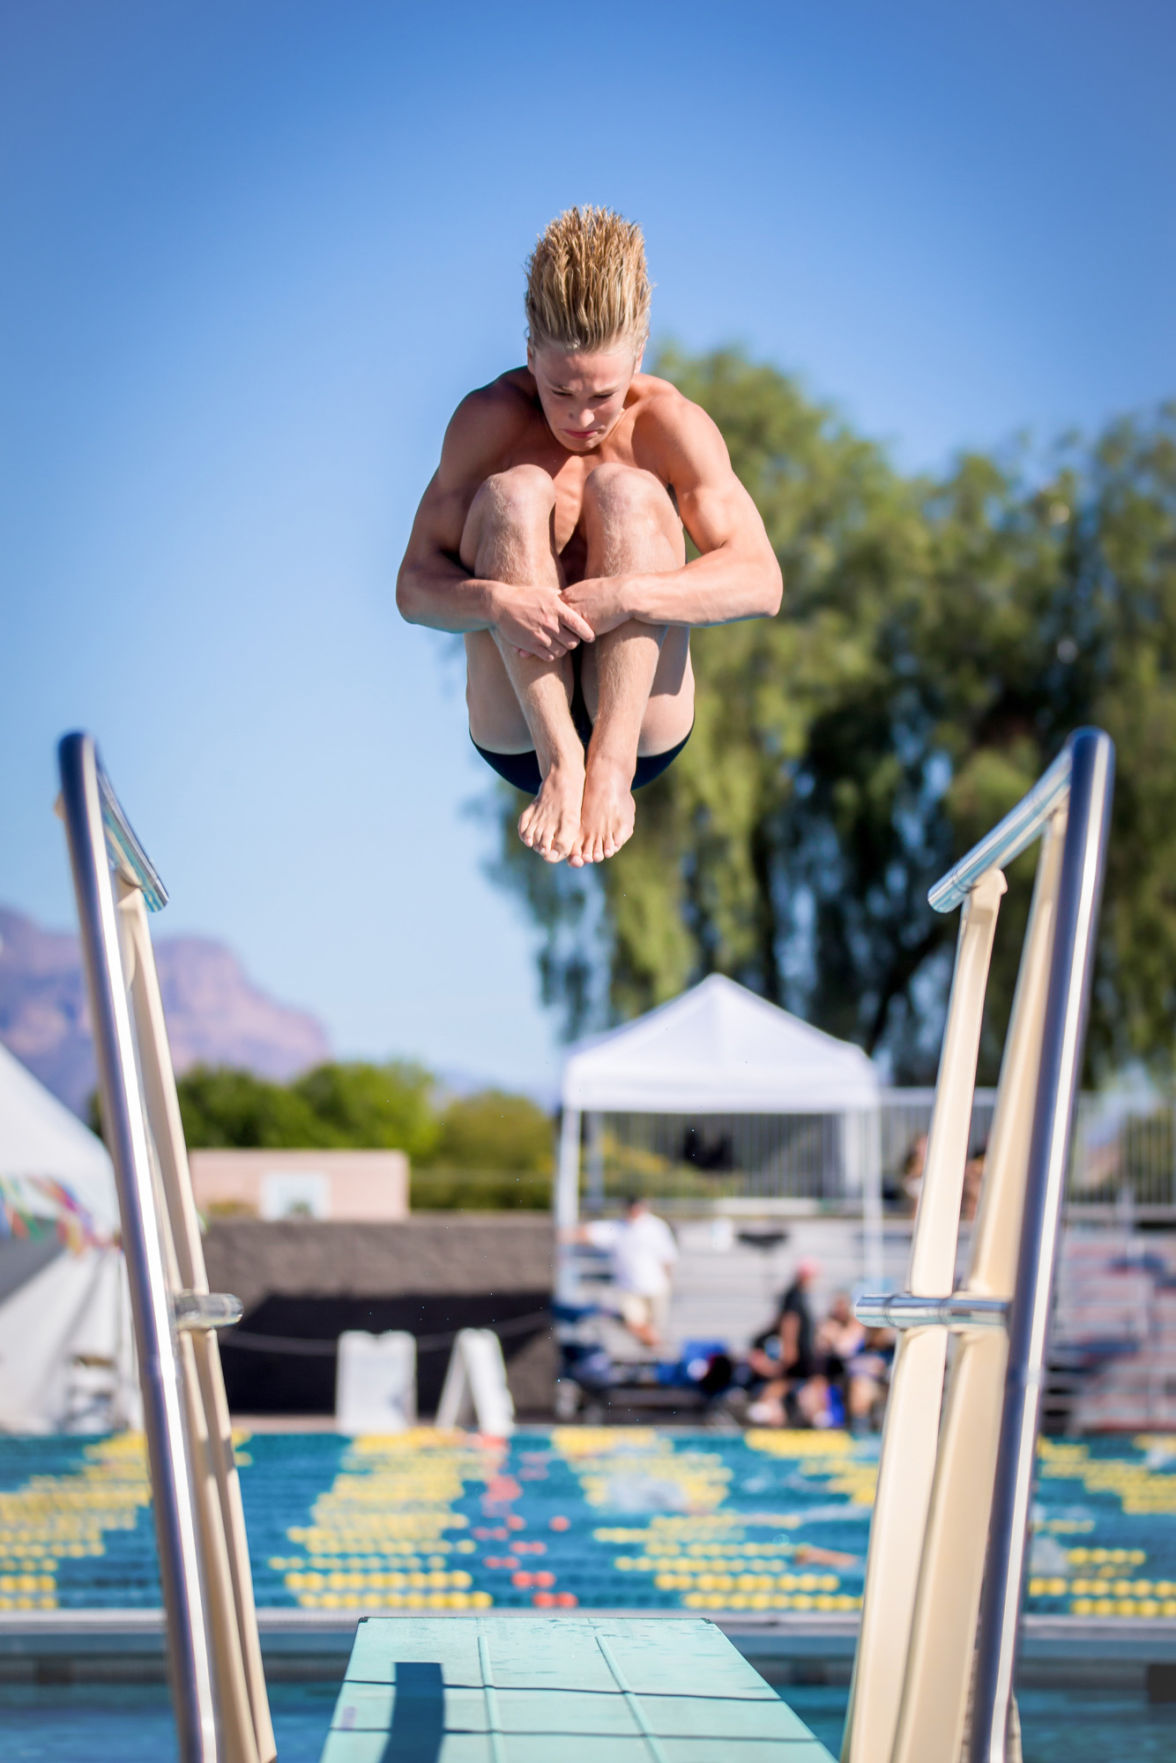 The love for diving often starts at a young age, when jumping off the board gets the heart rate going before hitting the water, enthusiasts say.